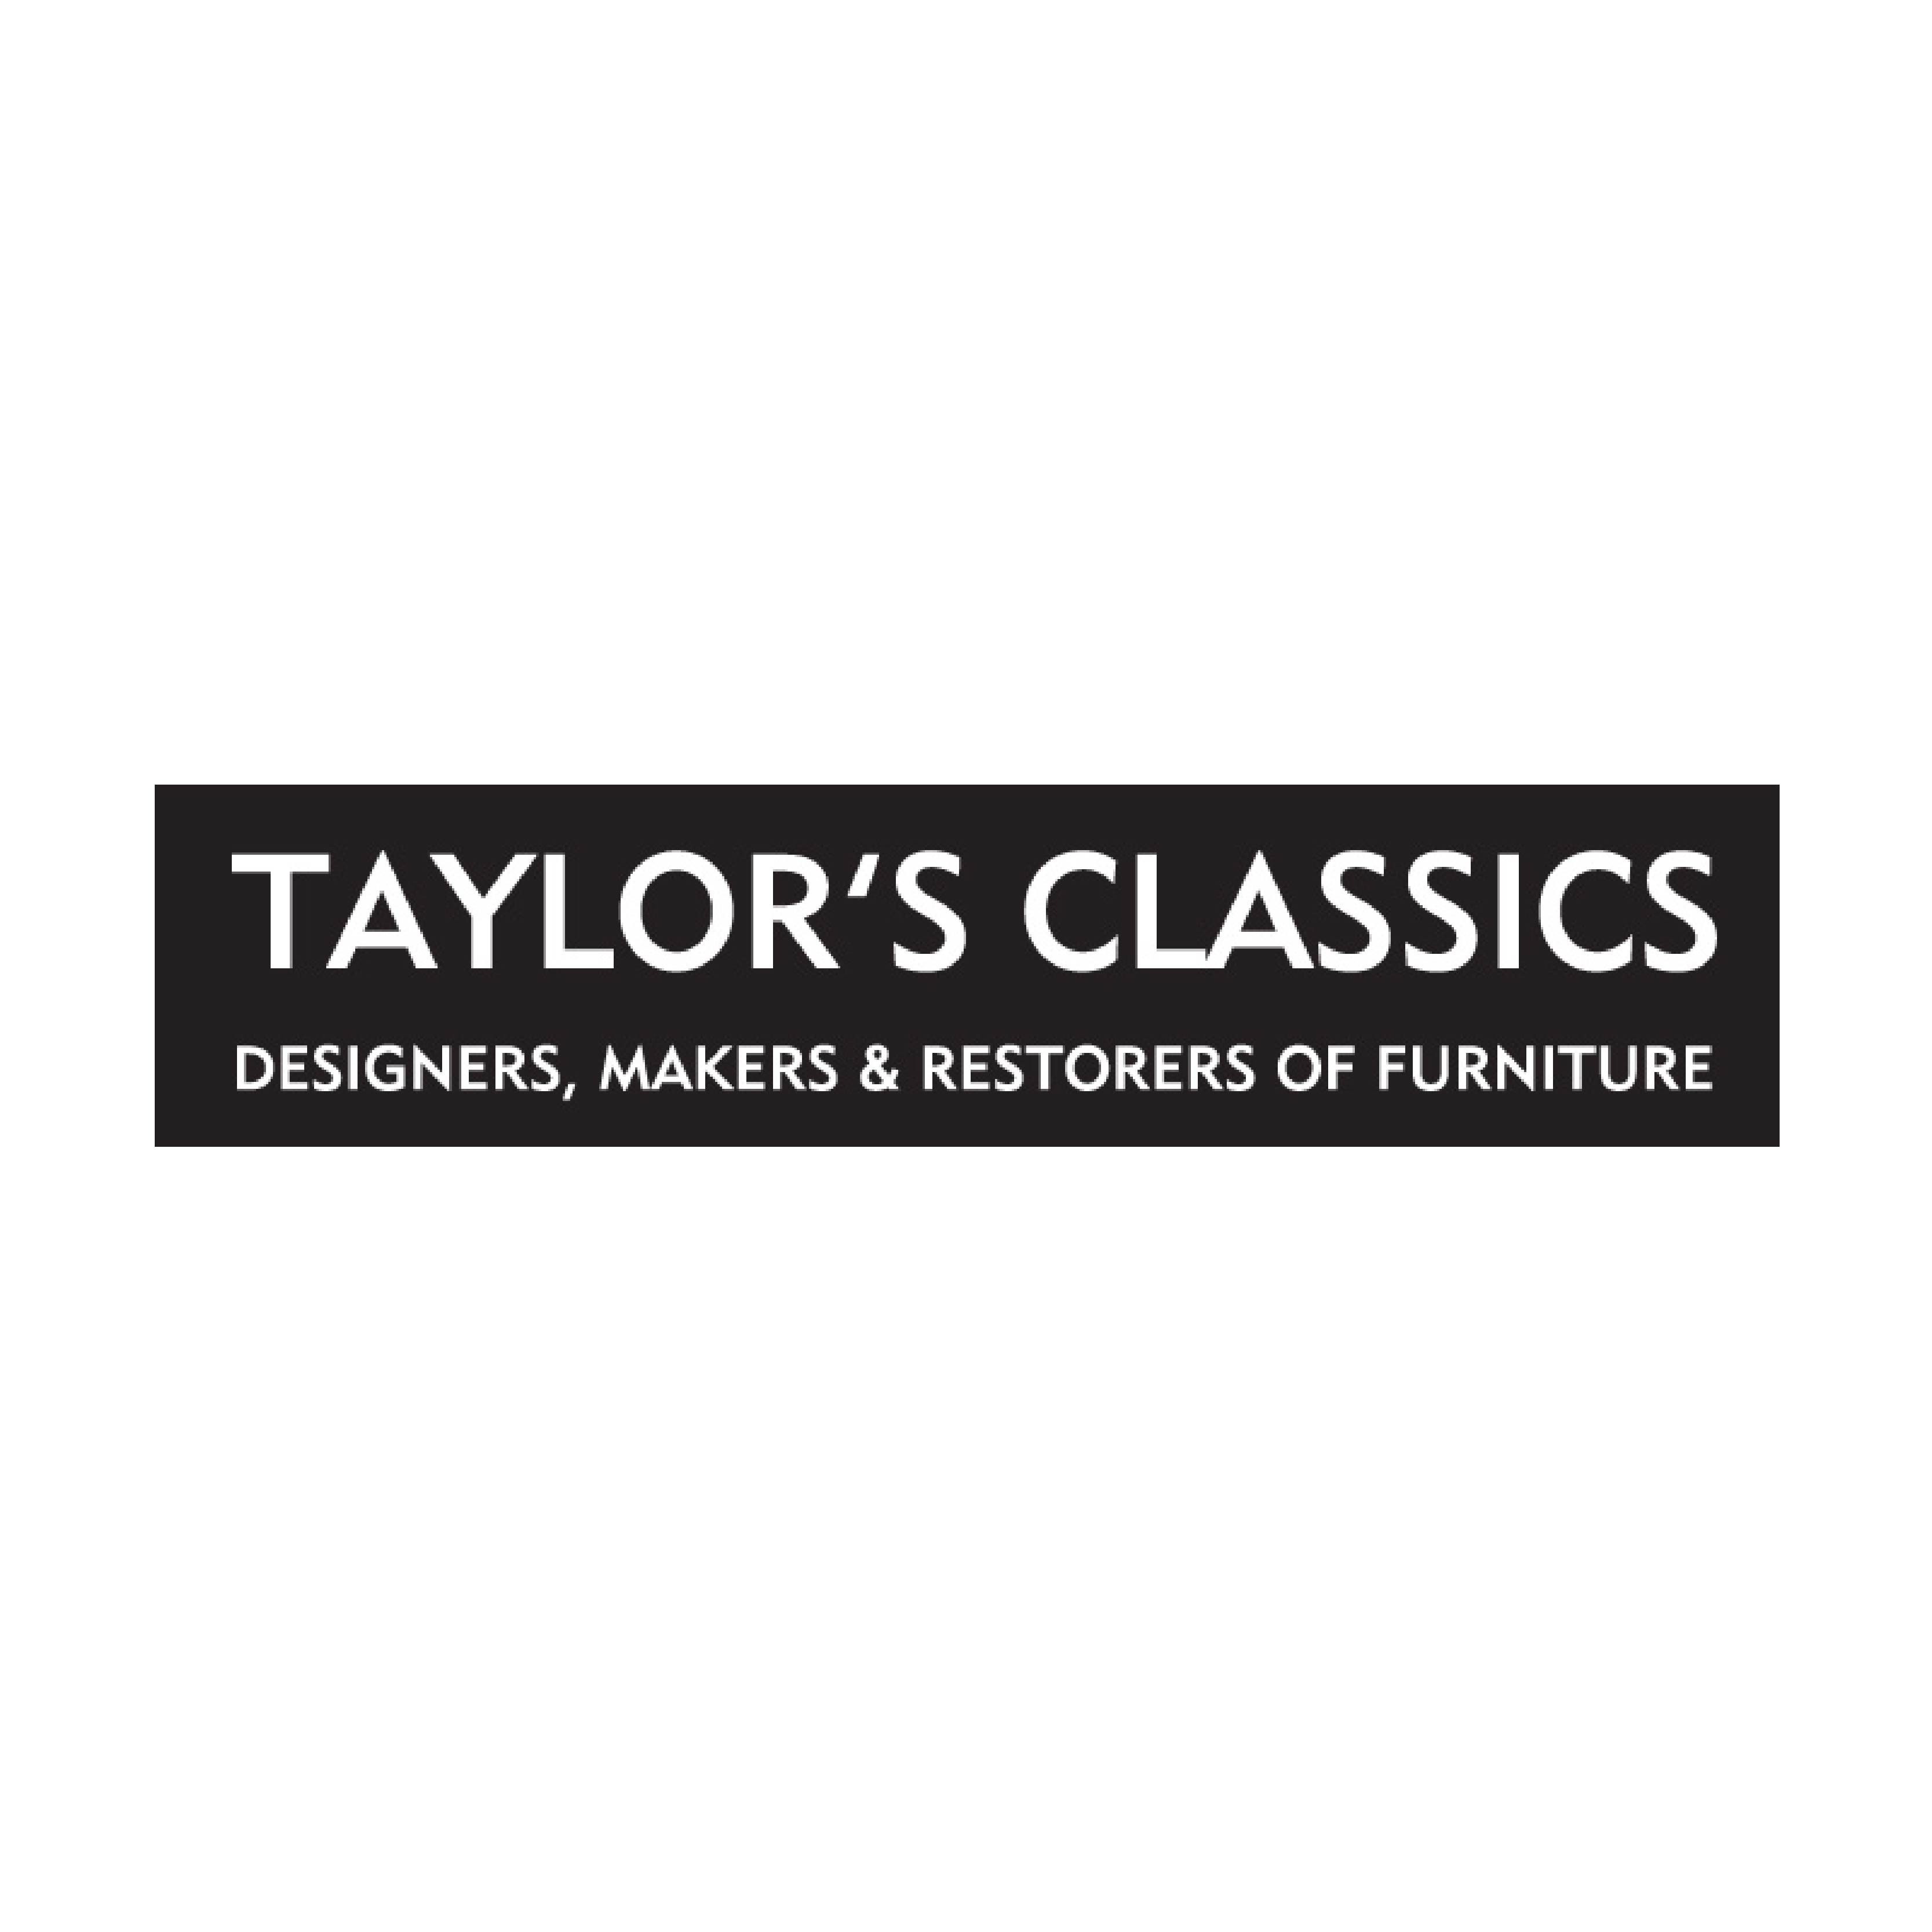 Leather Sofa Repairs In Liverpool: Taylor's Classics